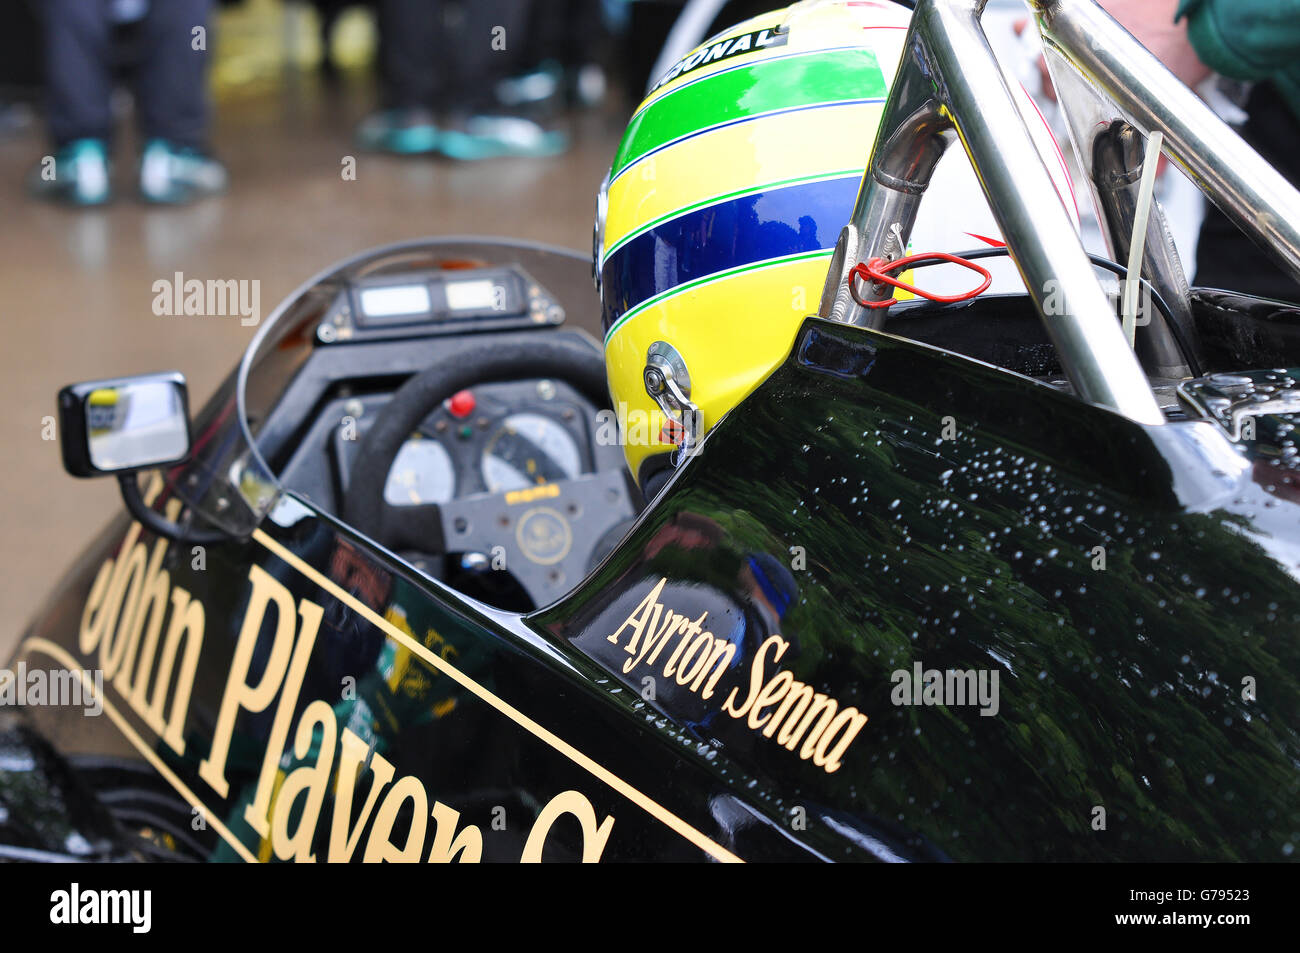 ayrton-senna-lotus-formula-1-grand-prix-racing-car-at-goodwood-festival-G79523.jpg